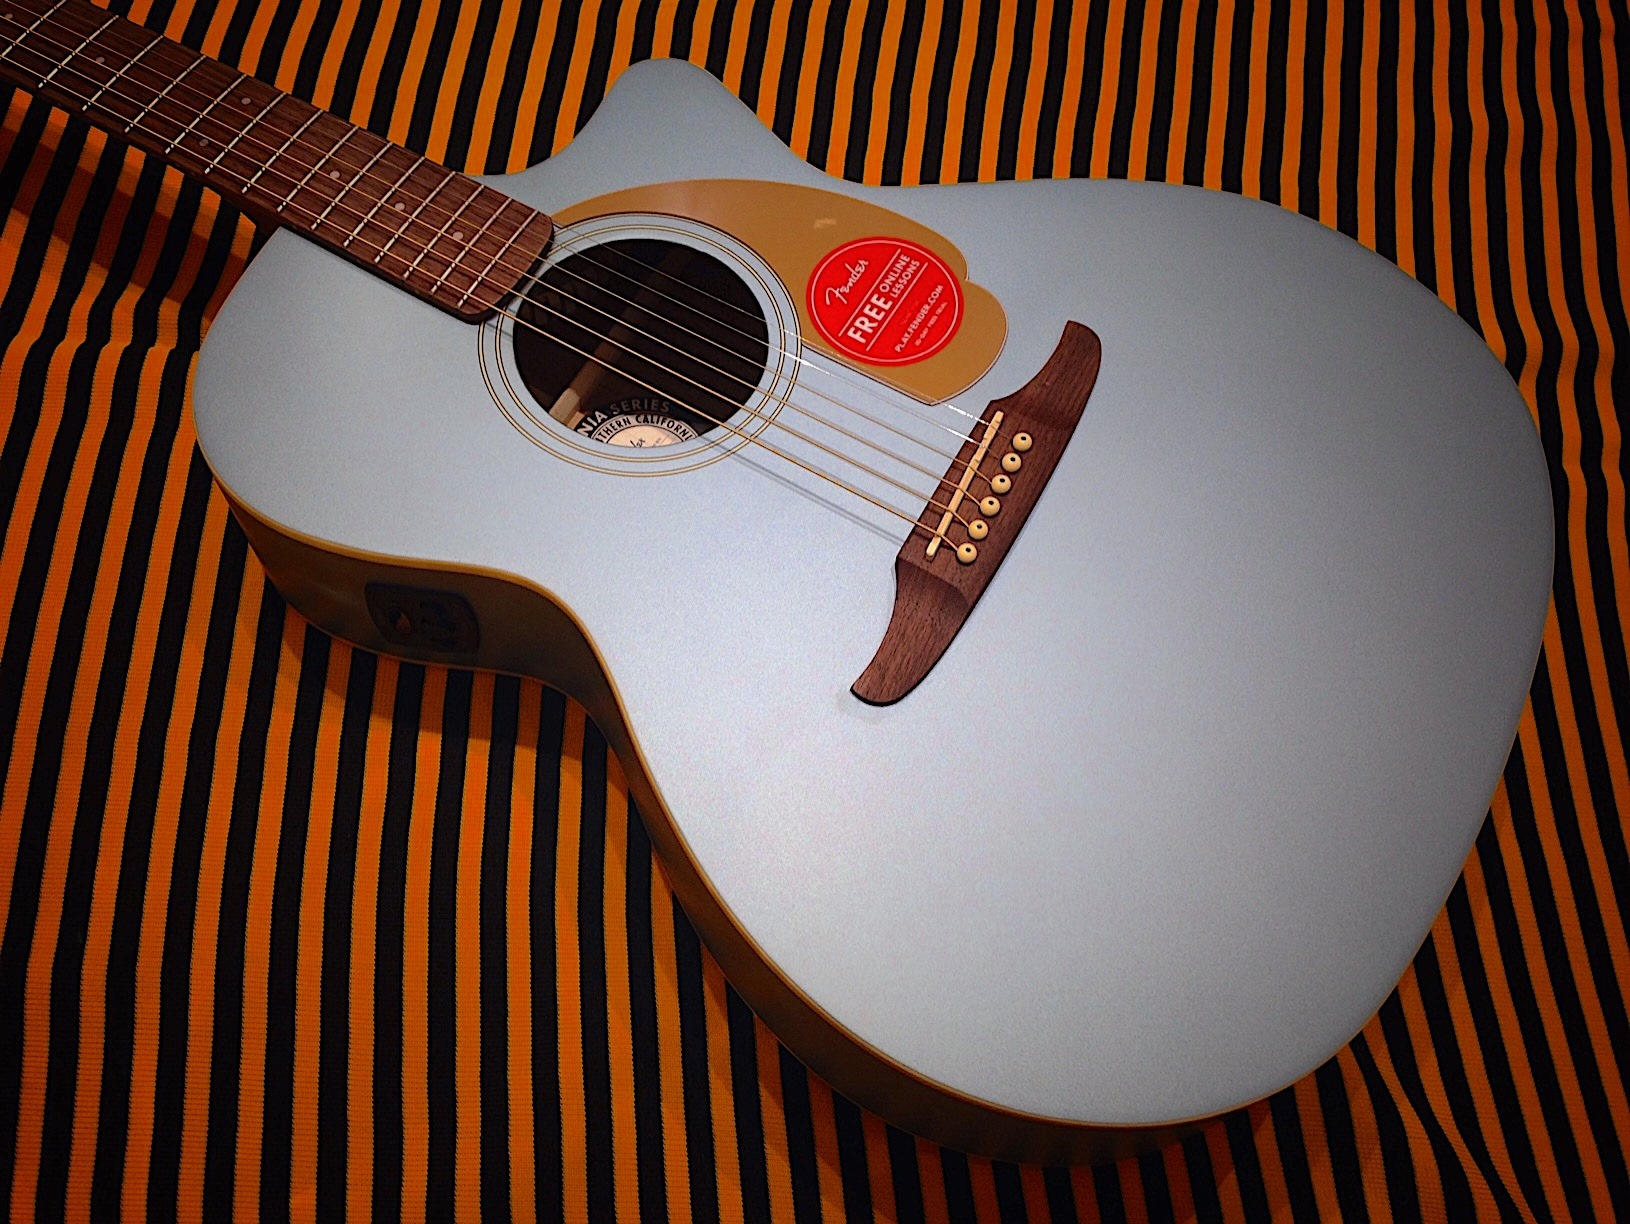 Fender-newporter-guitar